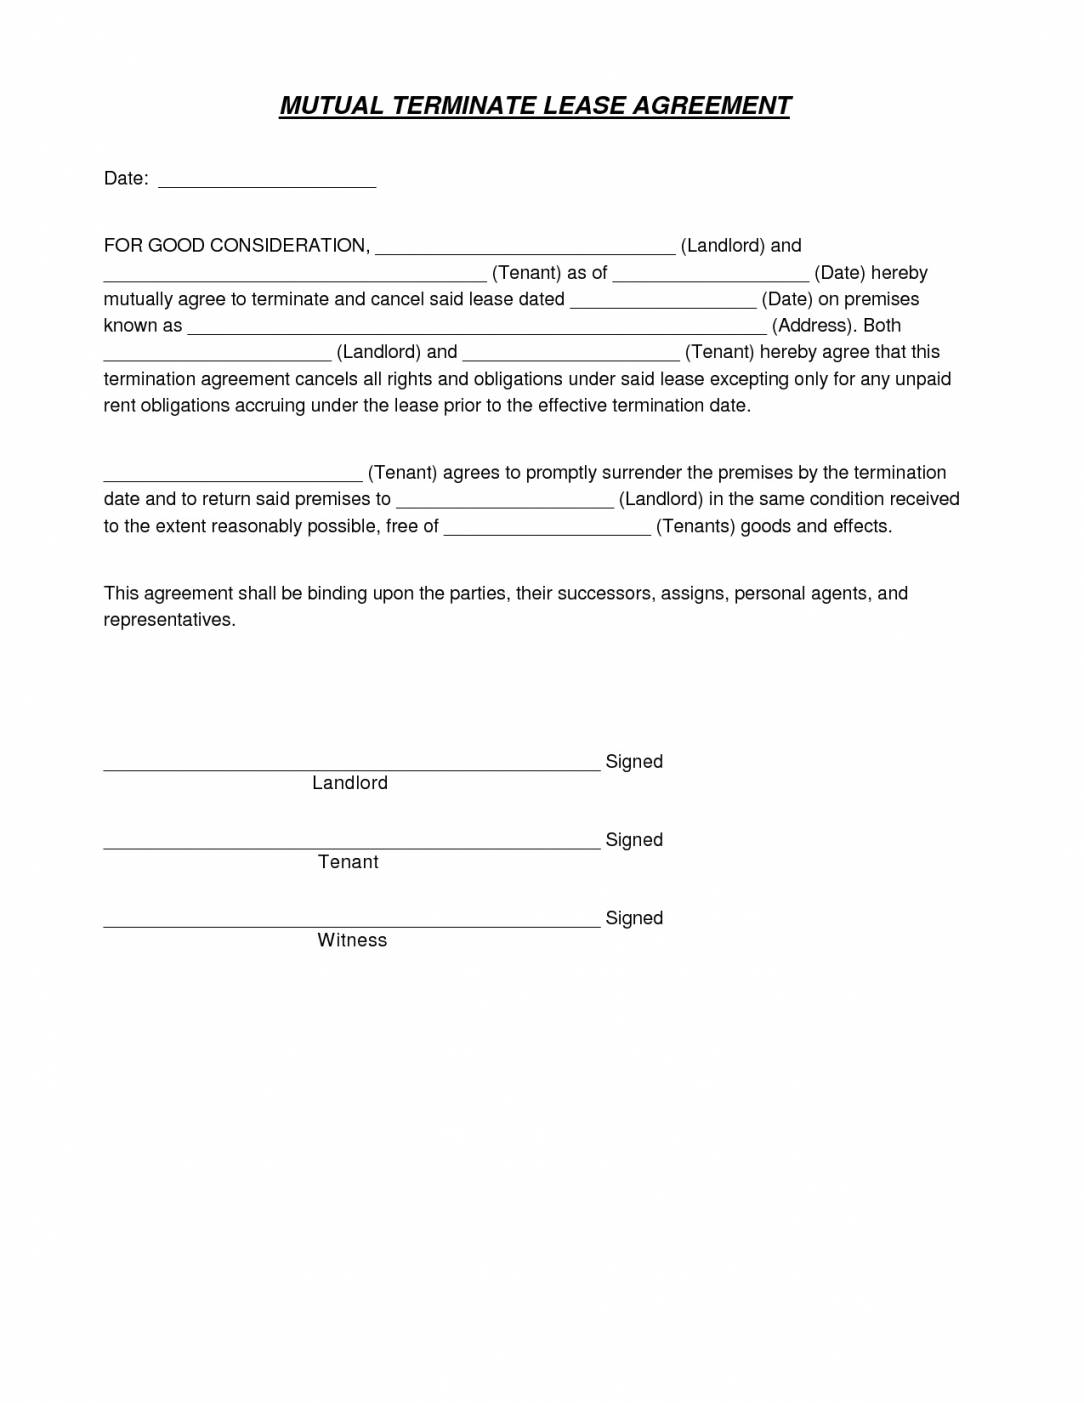 Mutual Termination Of Lease Agreement Template